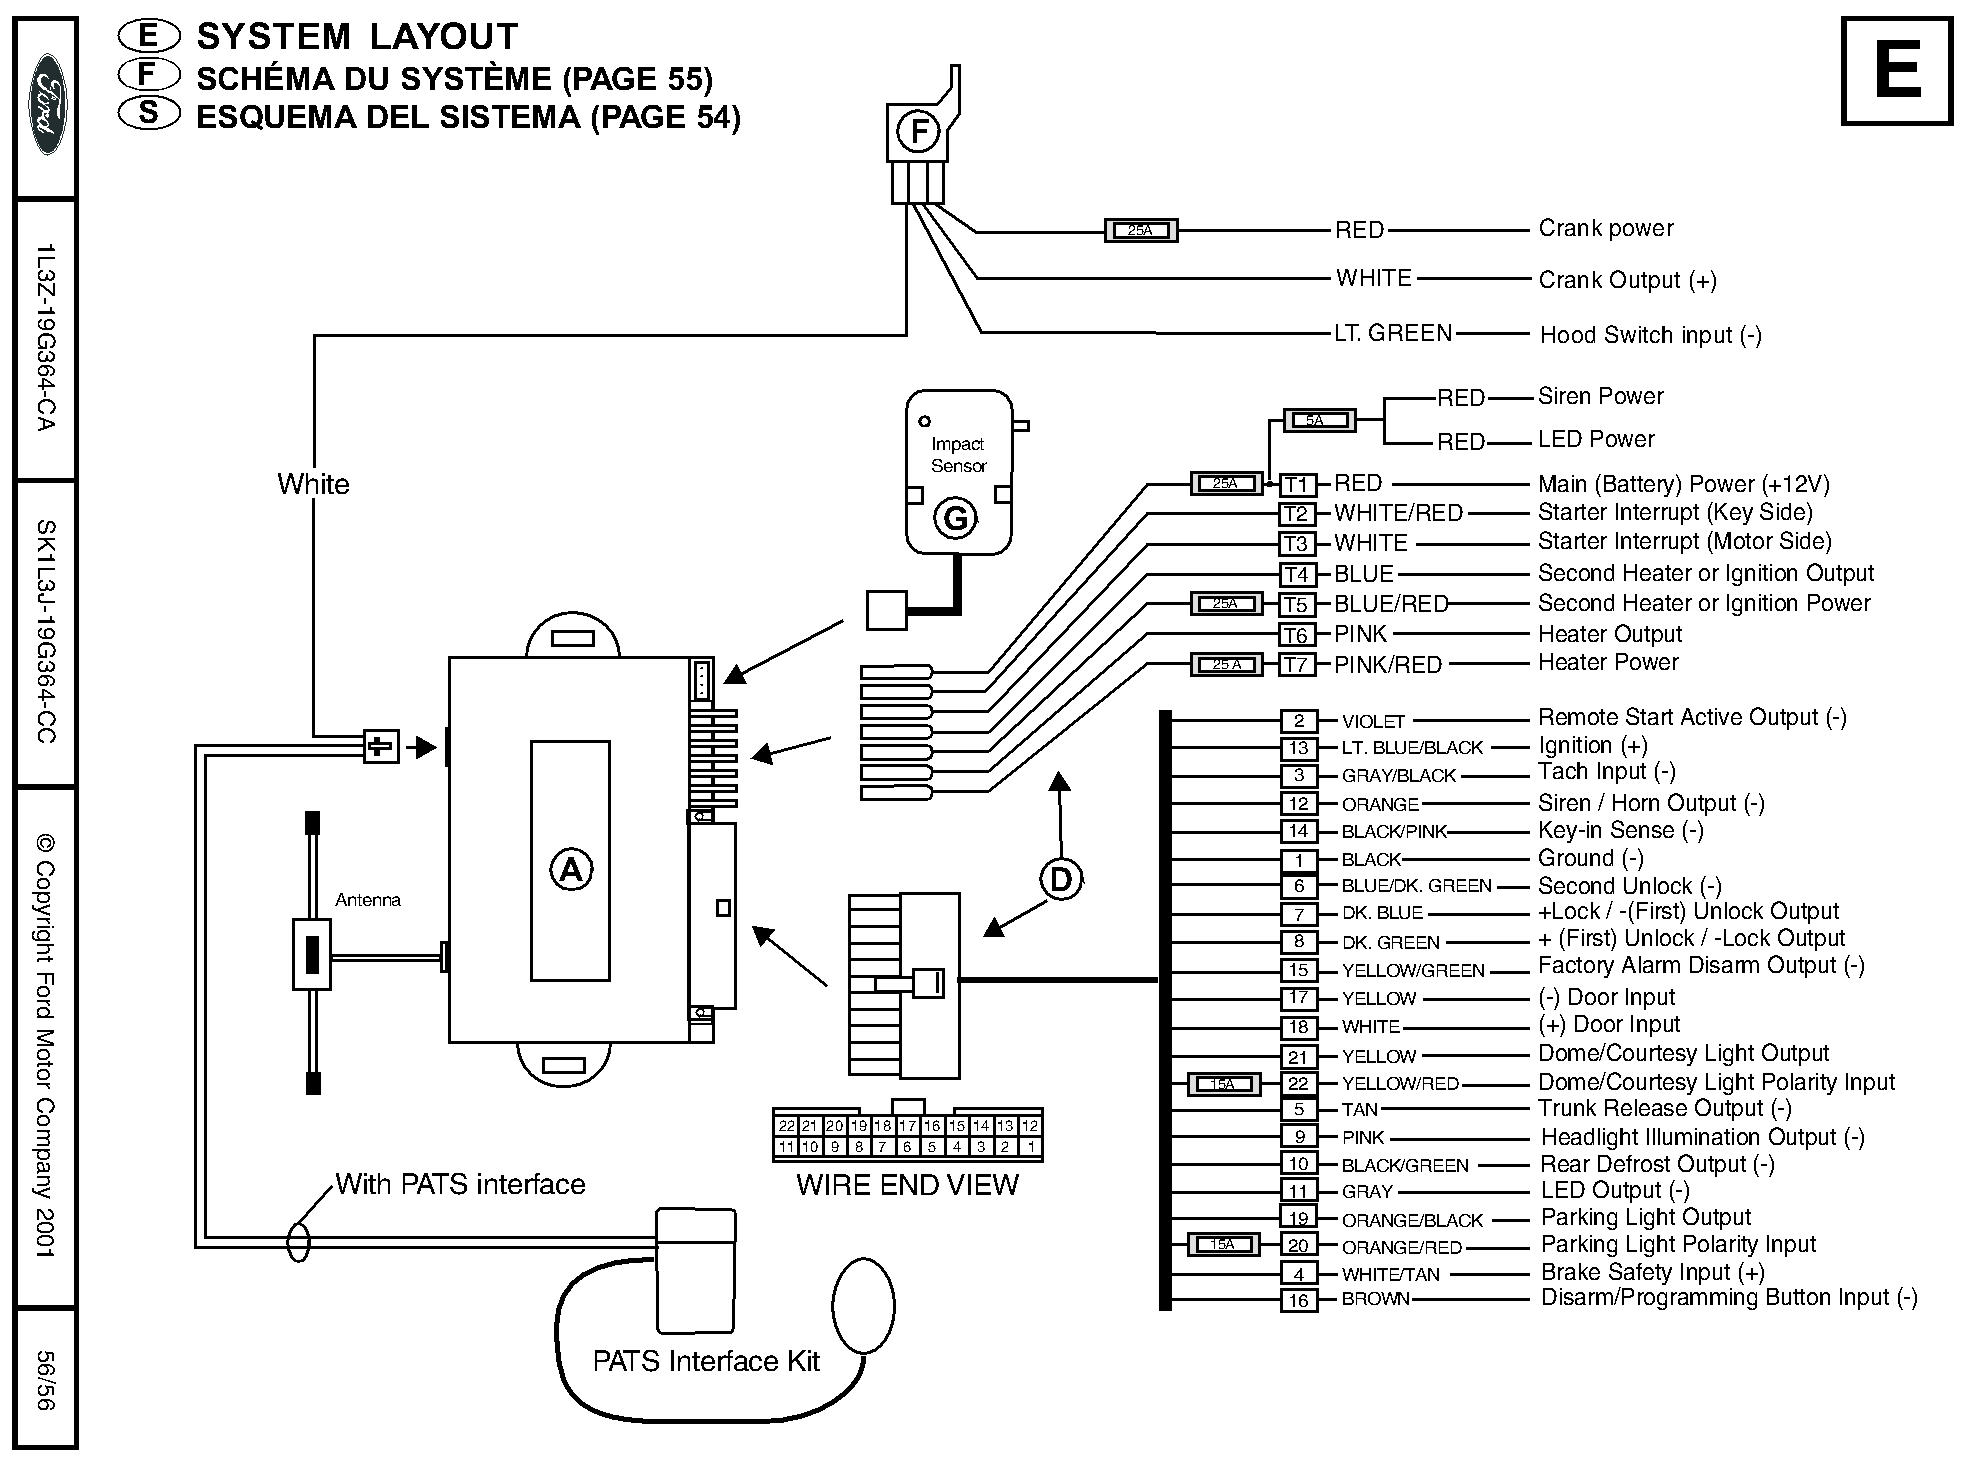 bulldog 791 wiring diagram bulldog security car wiring diagram bulldog discover your wiring viper remote start wiring diagram